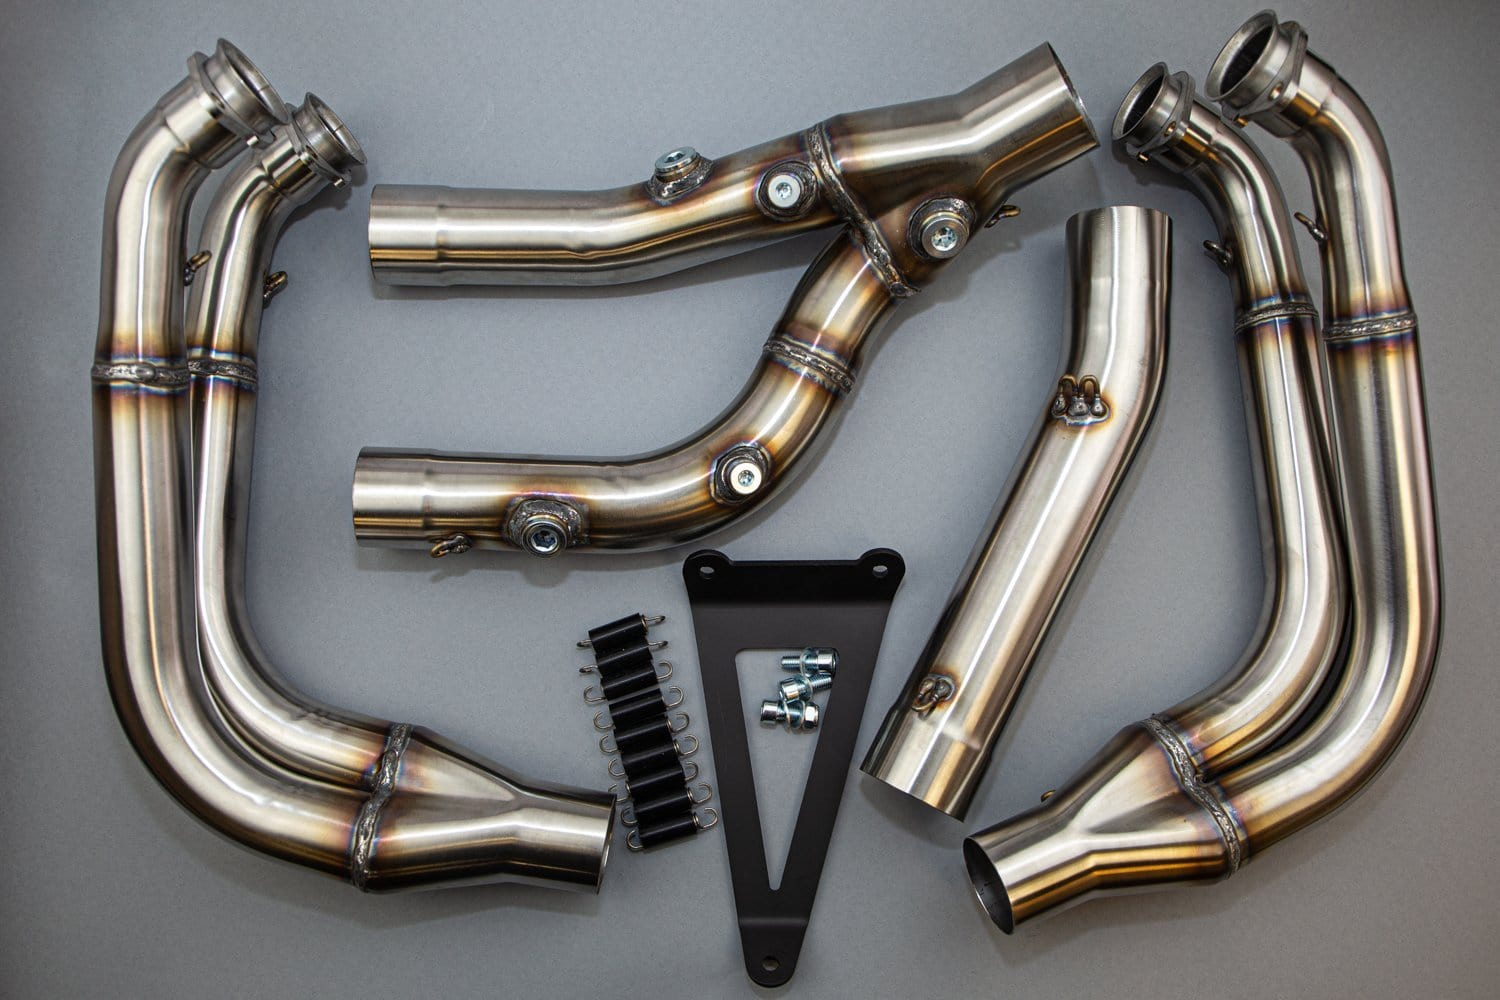 BMW 2020 S1000RR Full/Evo Megaphone High Race Front Section, Stainless (12225) - Woodcraft Technologies - Motorcycle Parts